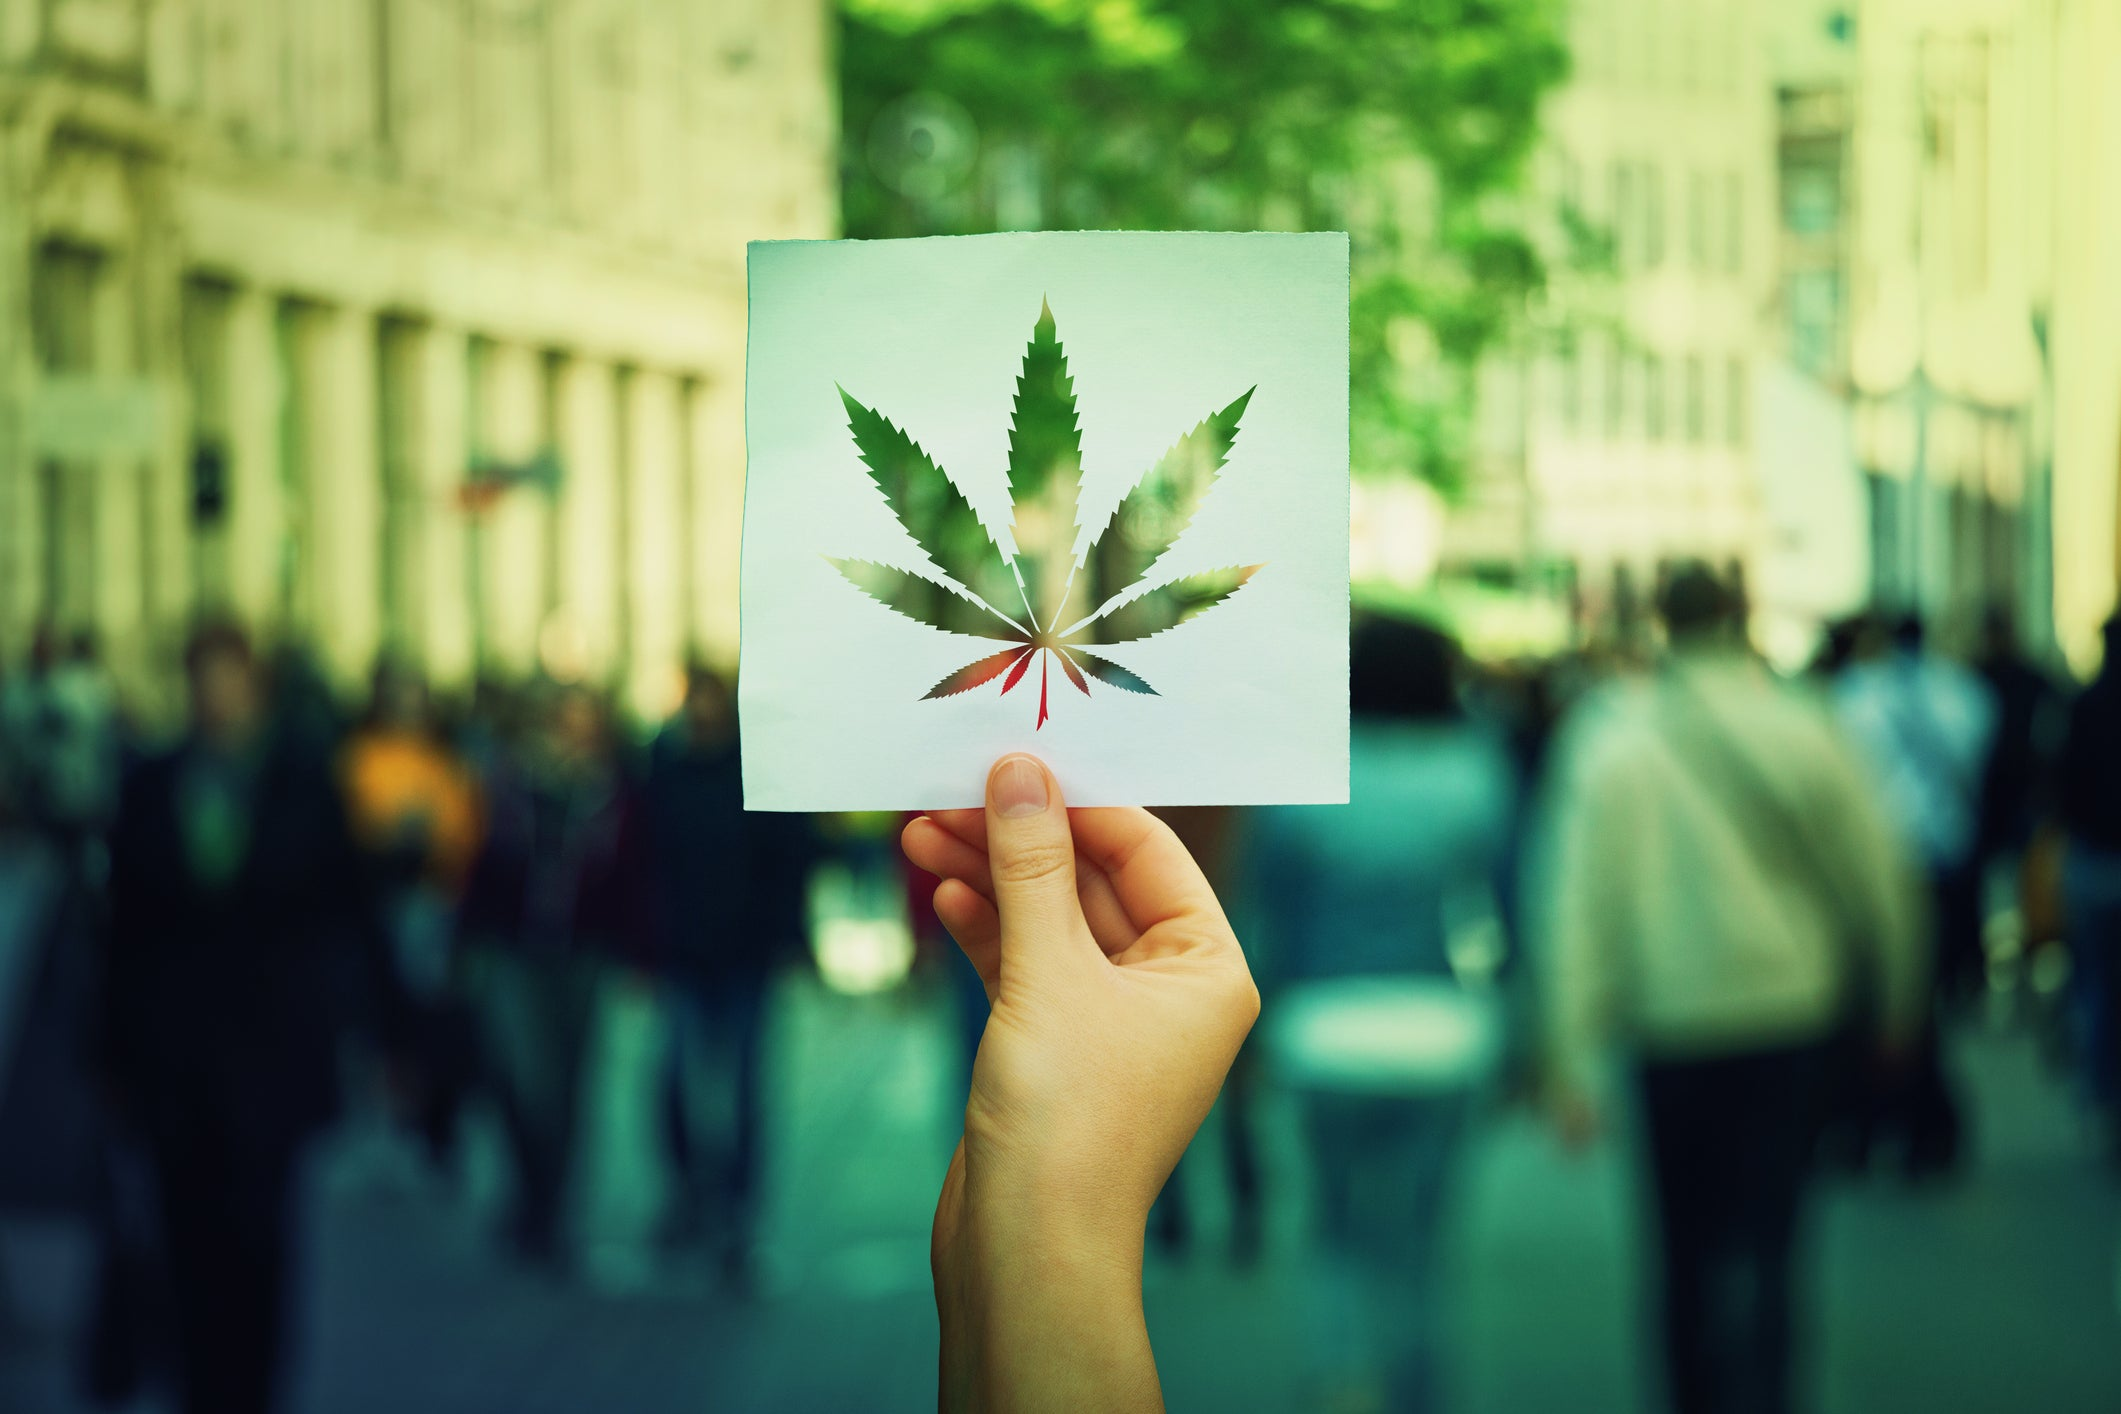 Hand holding up piece of paper with an image of a cannabis leaf cut out and a city street in the background